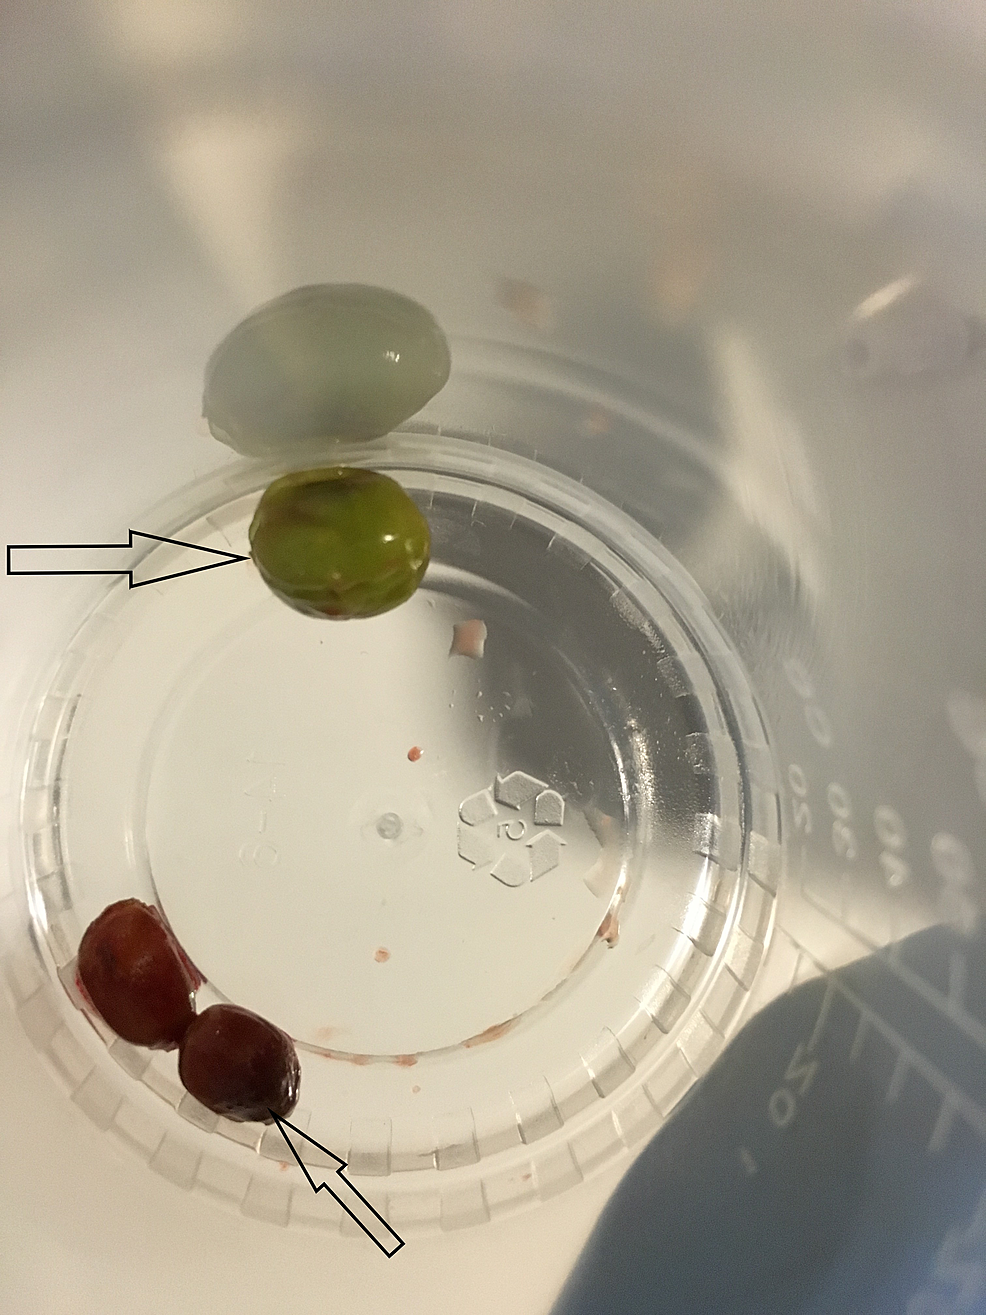 The-removed-green-peas-(top-arrow)-and-pomegranate-seeds-(bottom-arrow)